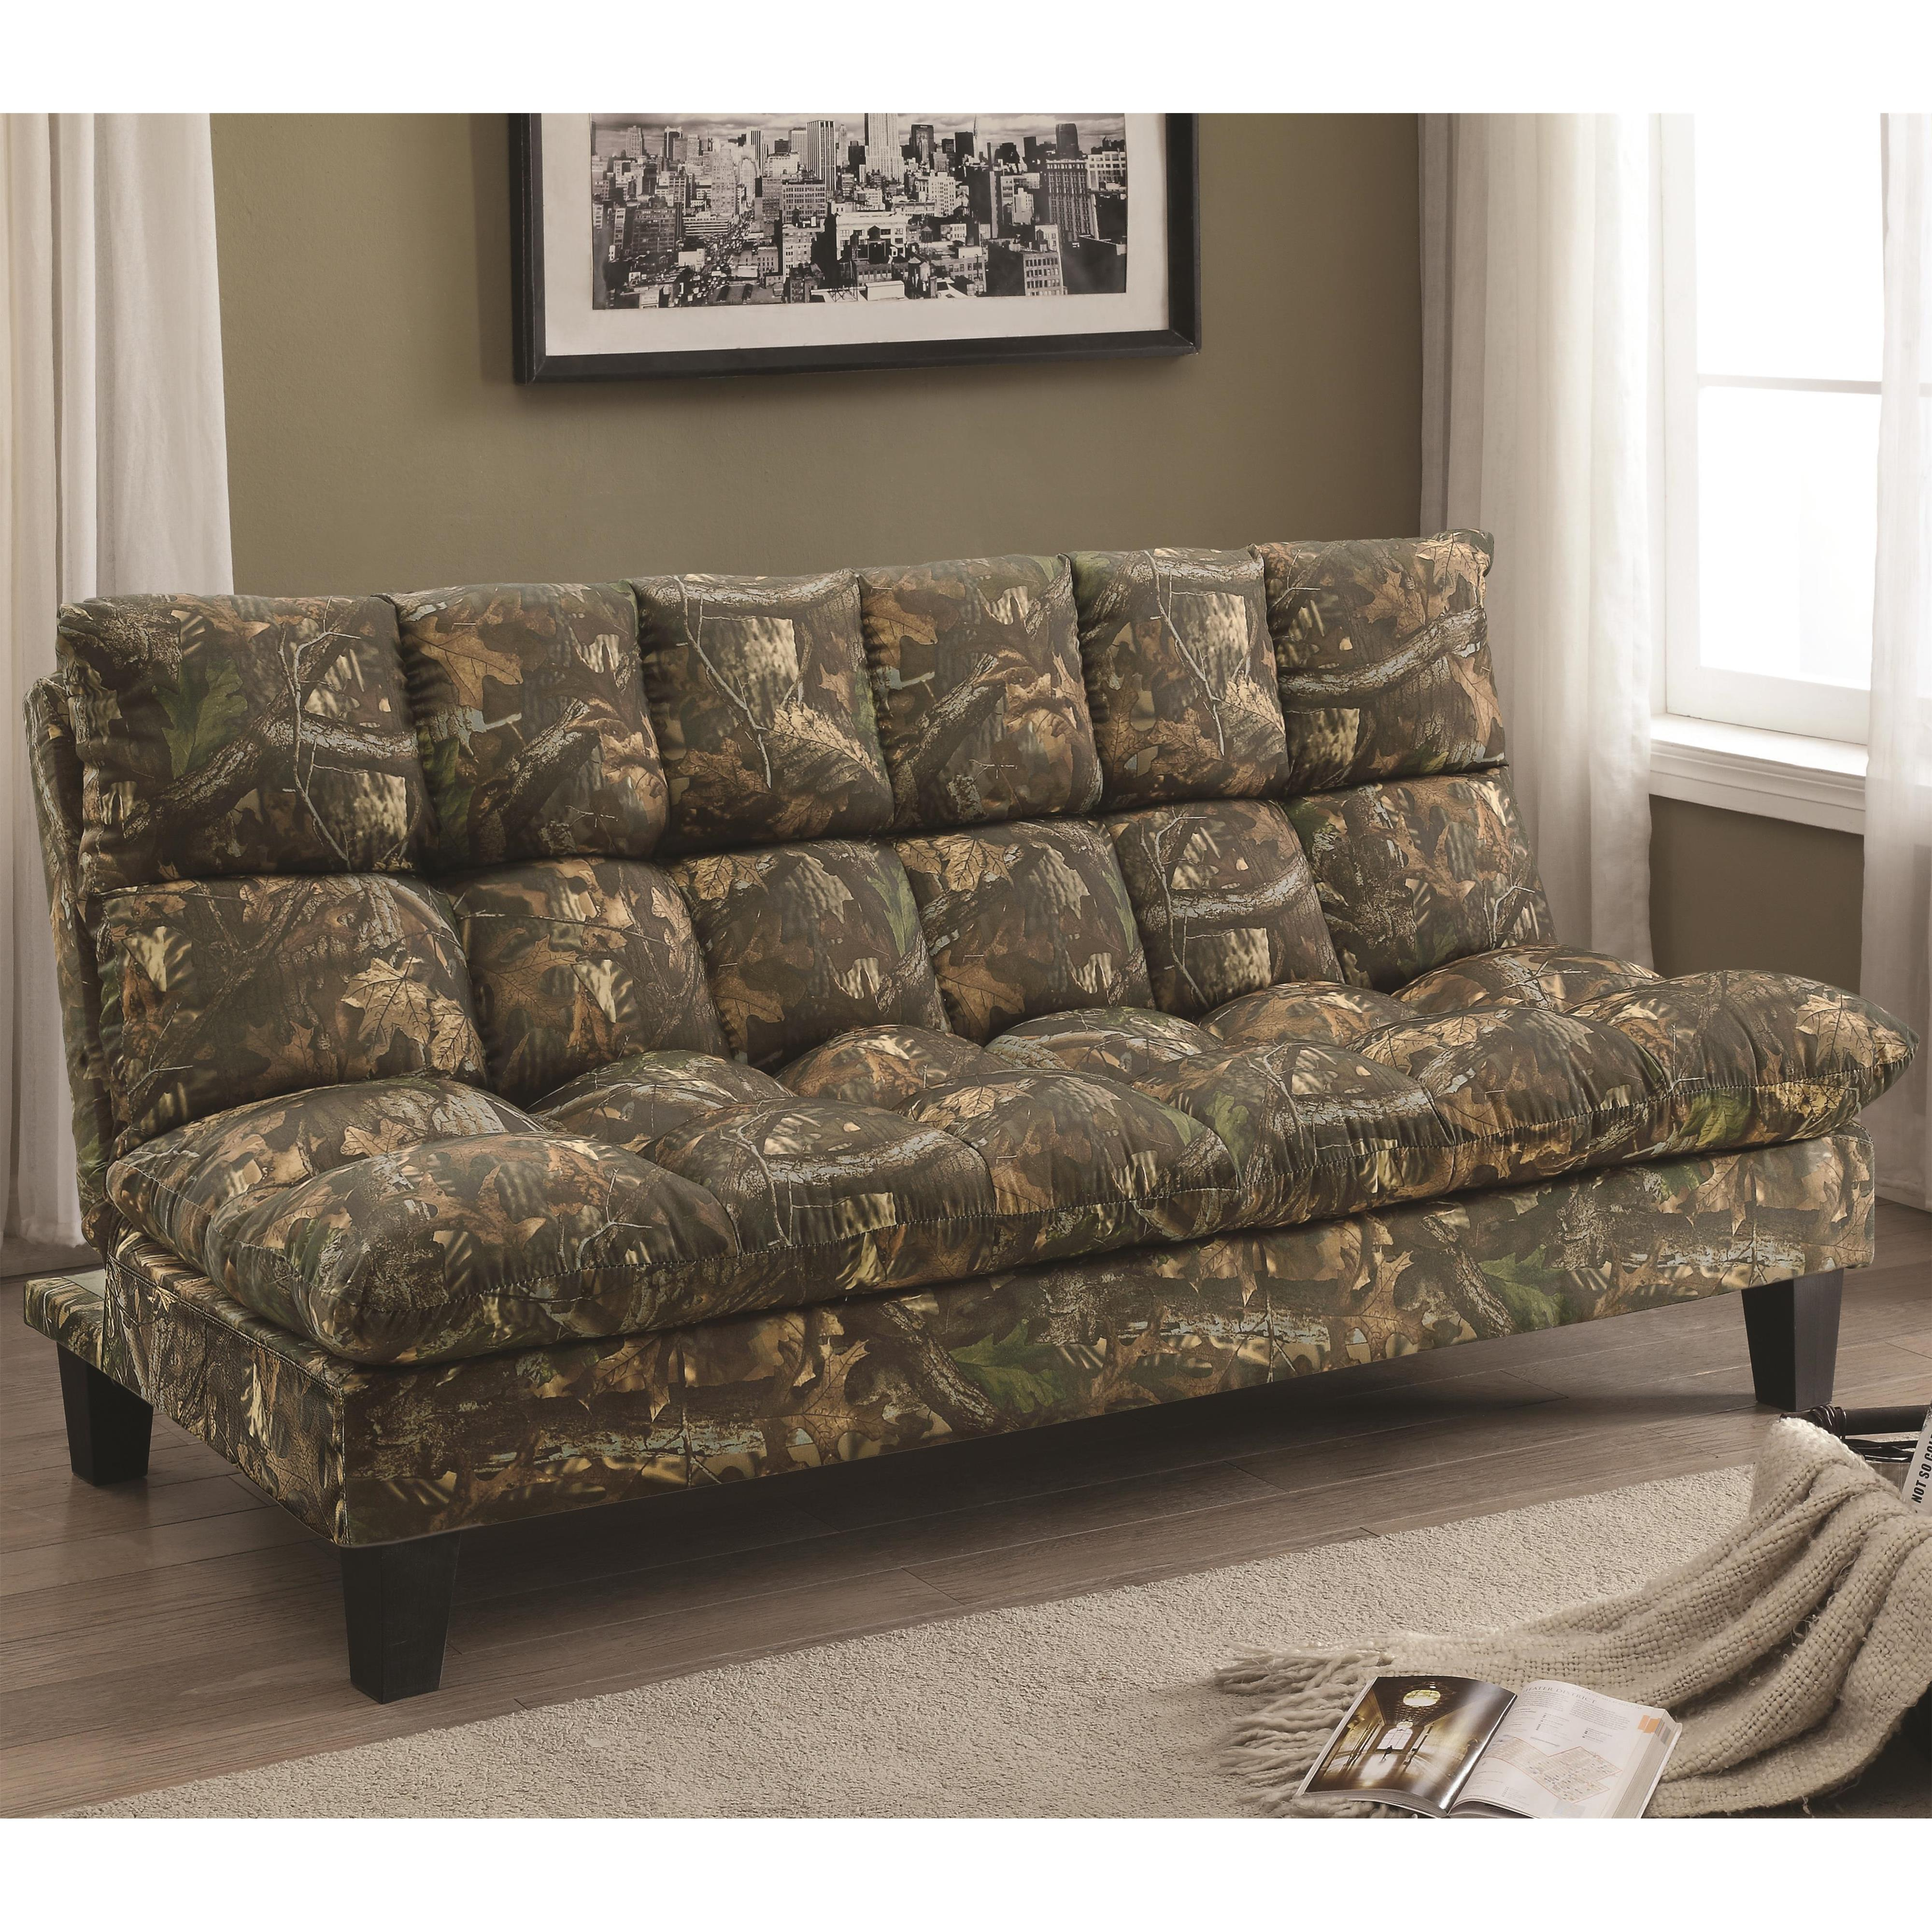 Coaster Sofa Beds and Futons -  Sofa Bed  - Item Number: 551065